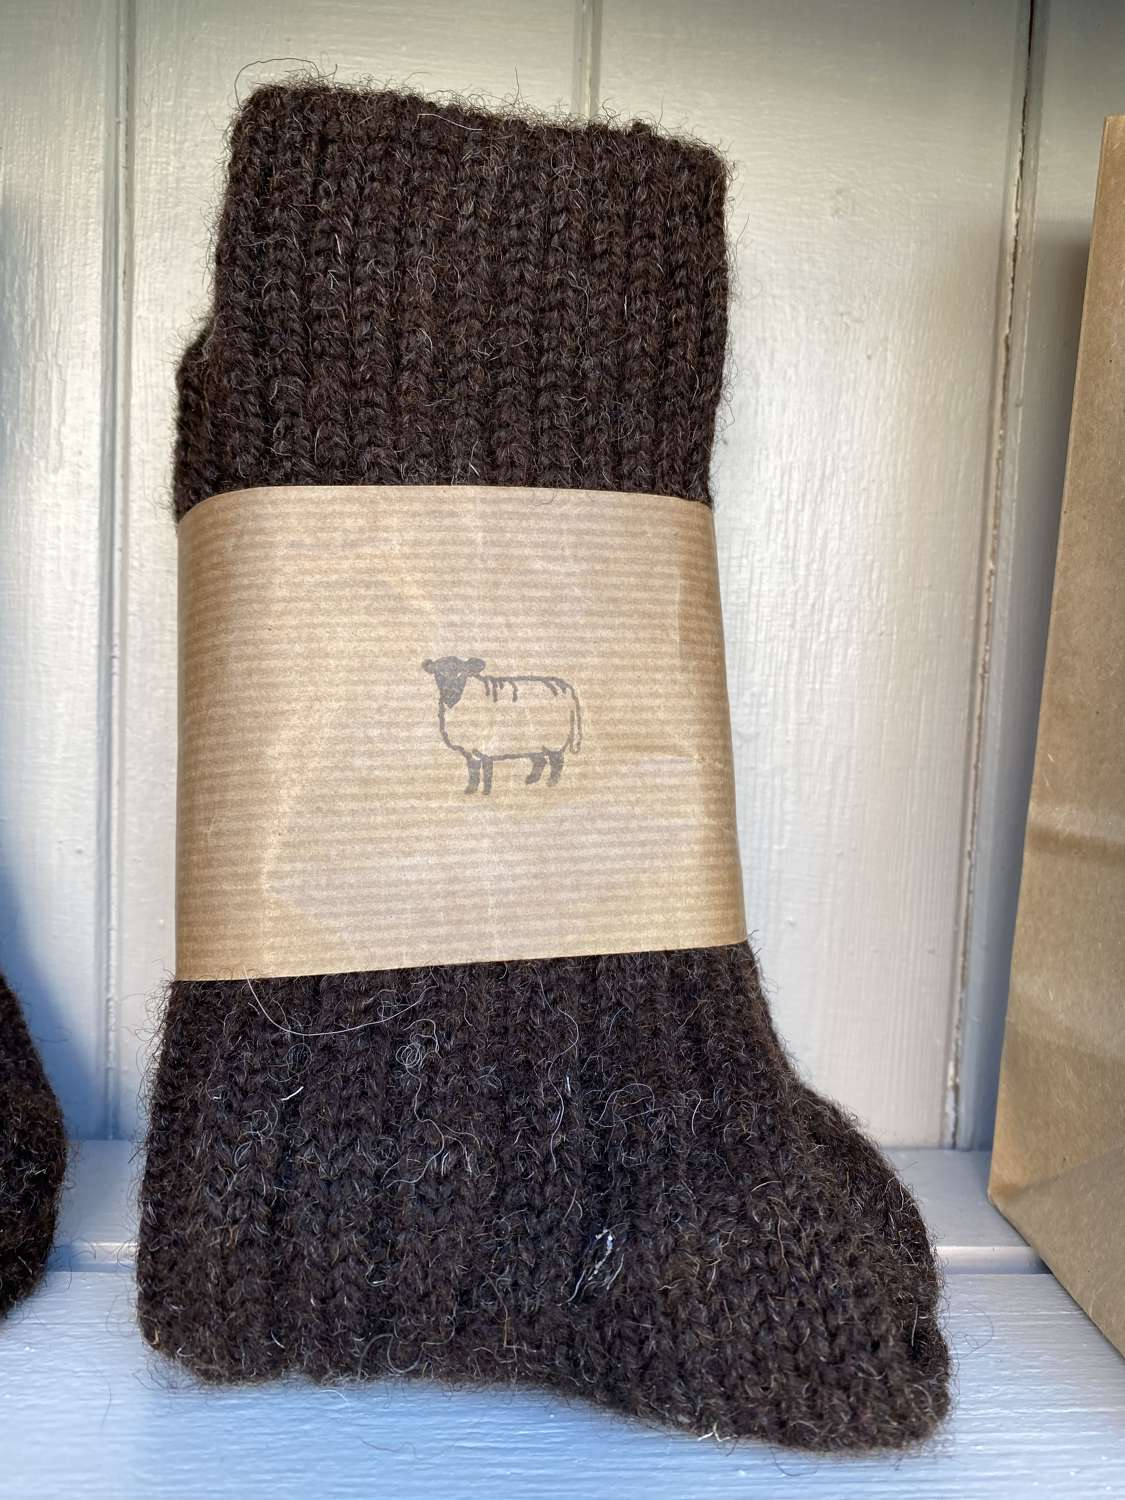 Pure wool socks - made in Ireland